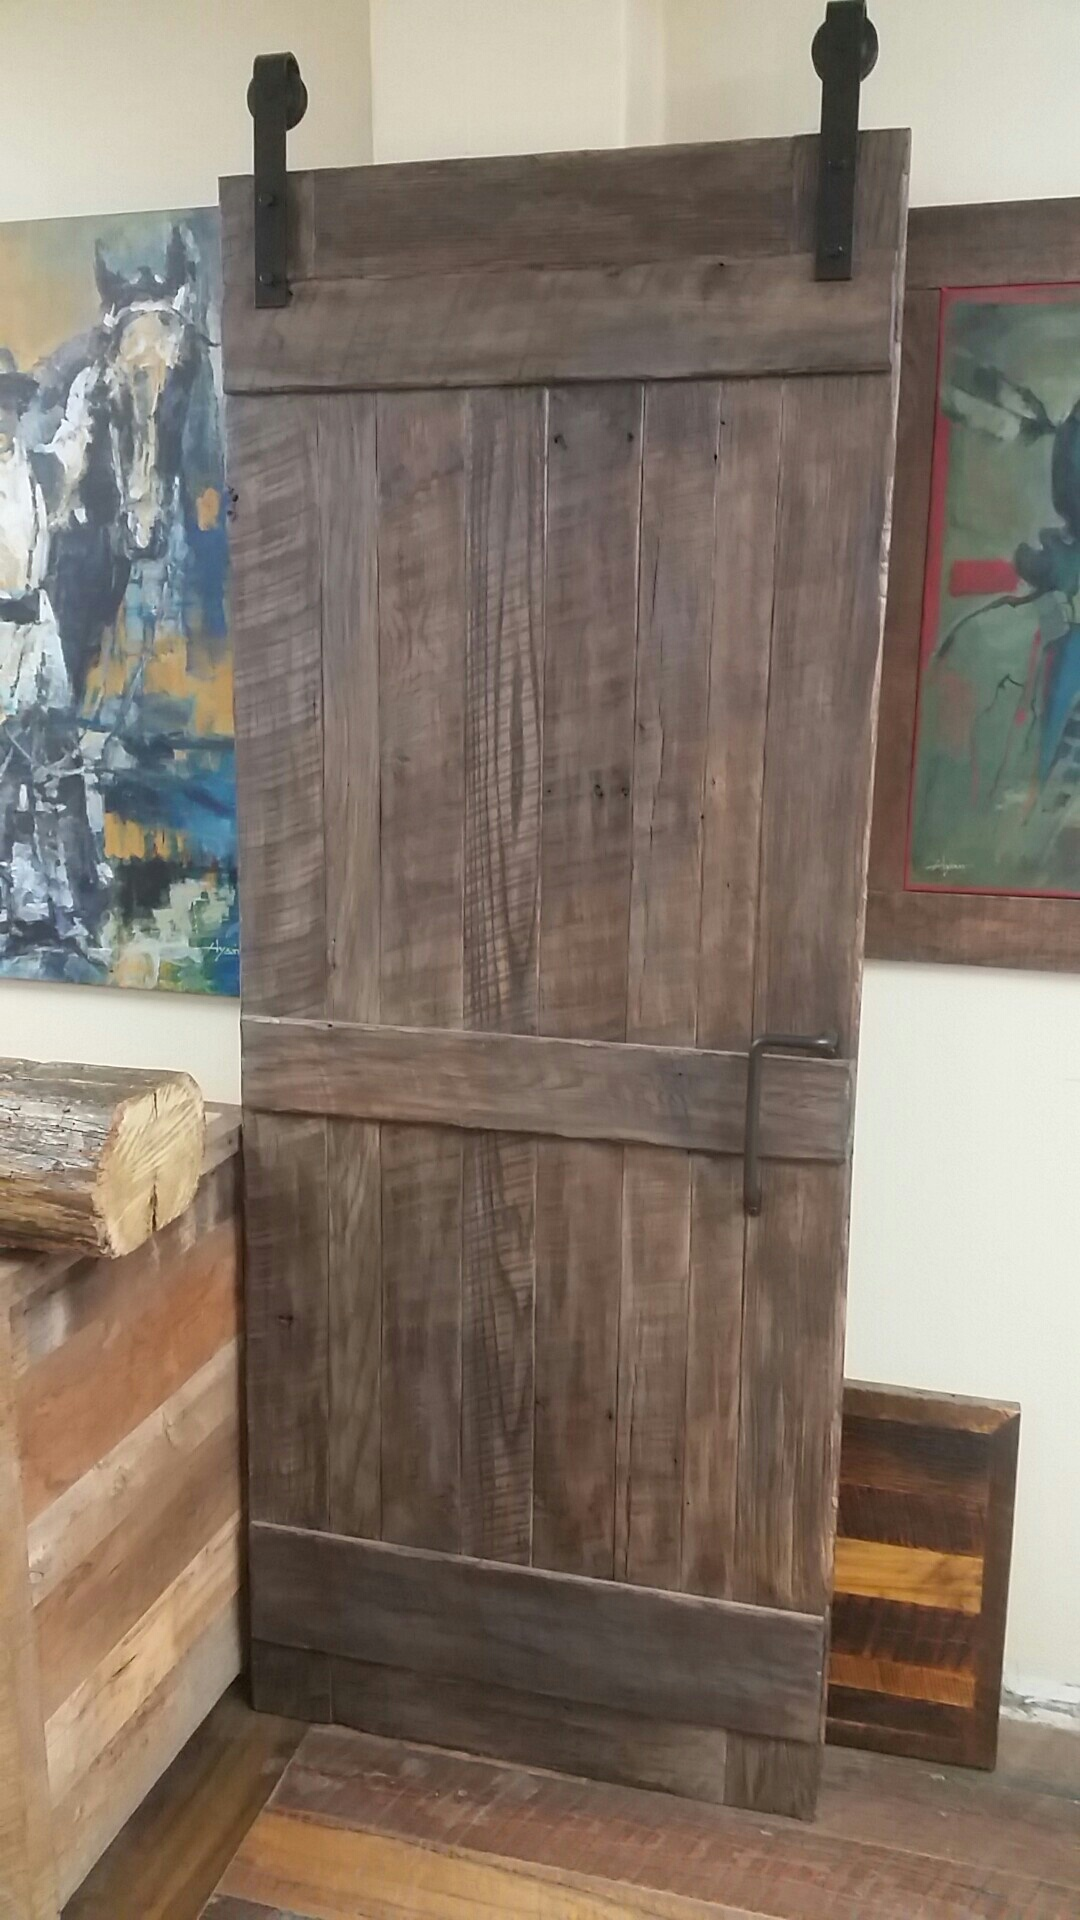 Custom barn doors using reclaimed wood is a great way to bring vintage material into the home. The barn doors are created using unique vintage lumber and offer a lot of character to any entry. U.S. Reclaimed, Vintage Lumber & Wood Works offers a variety of custom build options with reclaimed wood. Contact or visit the store to get started on your custom built piece today.